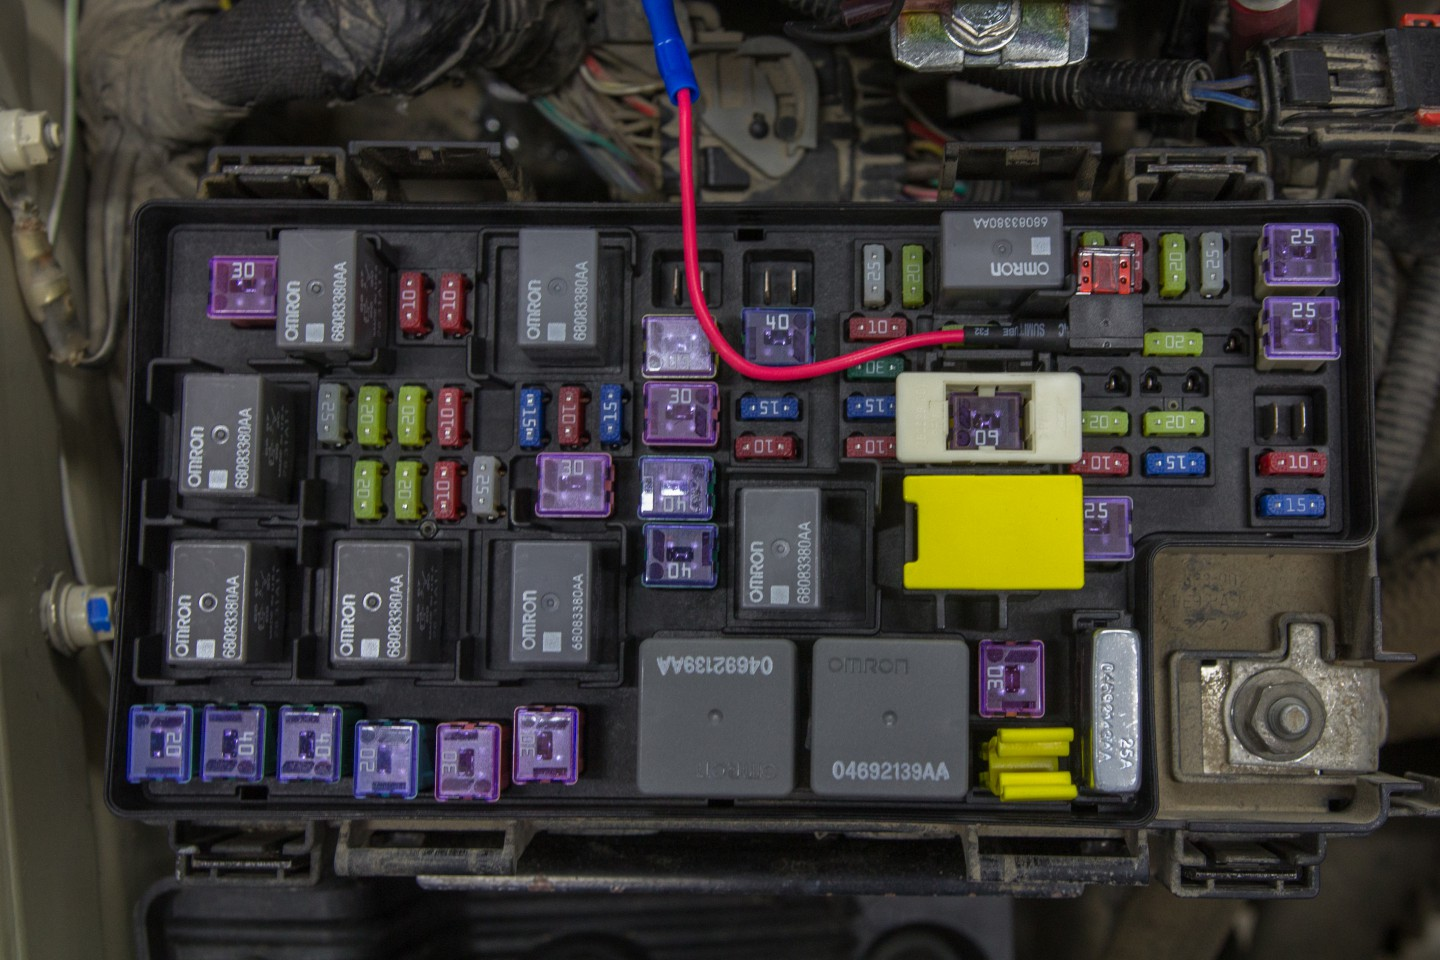 Diy Jeep Wrangler Jk Isolated Dual Batteries The Road Chose Me 8 Fuse Block Holder Box Mini Add A Circuit In